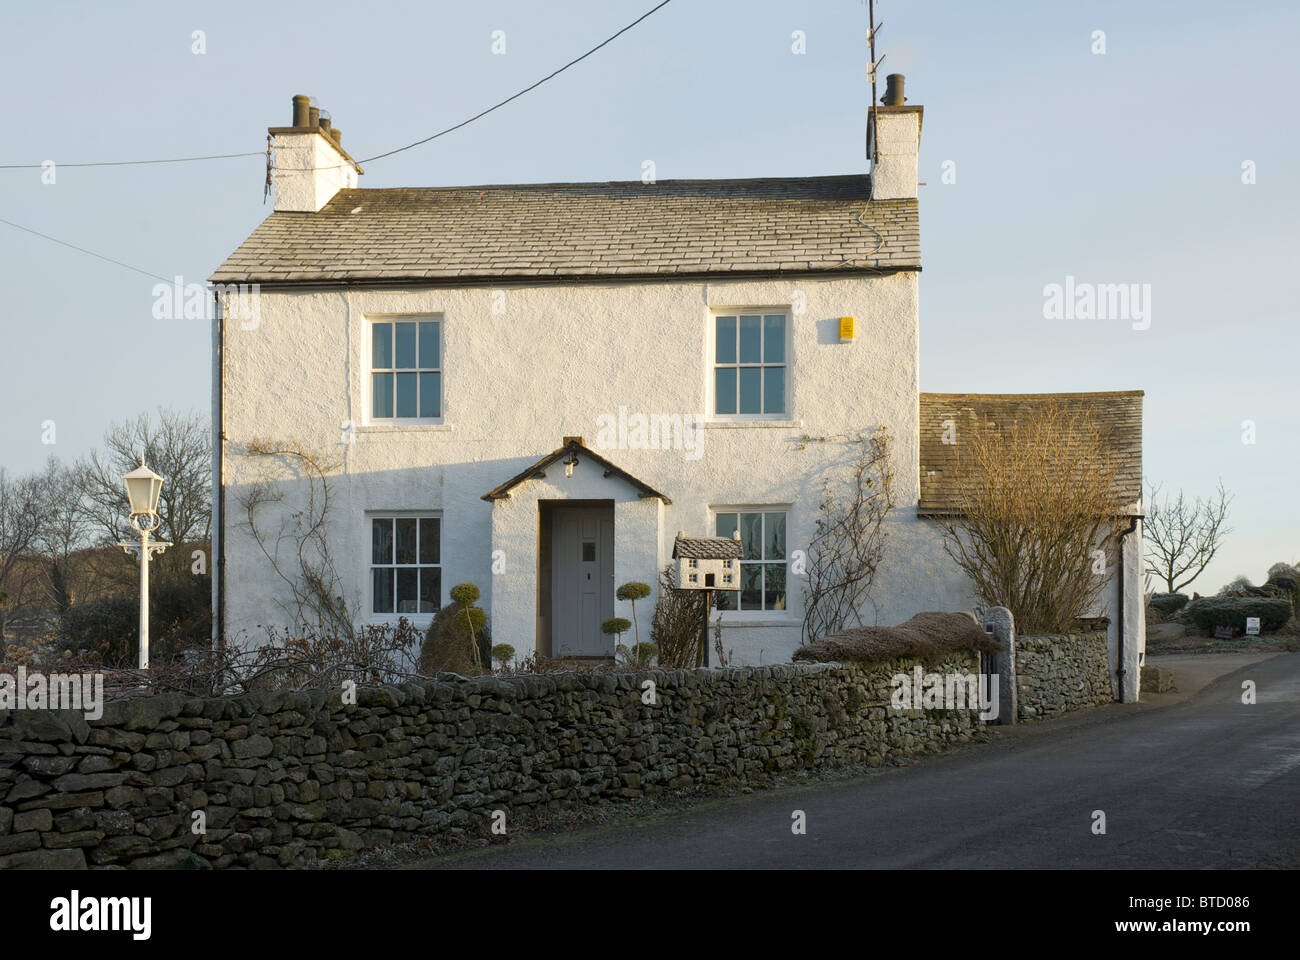 House in the village of Preston Patrick, near Kendal Cumbria, England UK, with birdhouse in a similar style - Stock Image